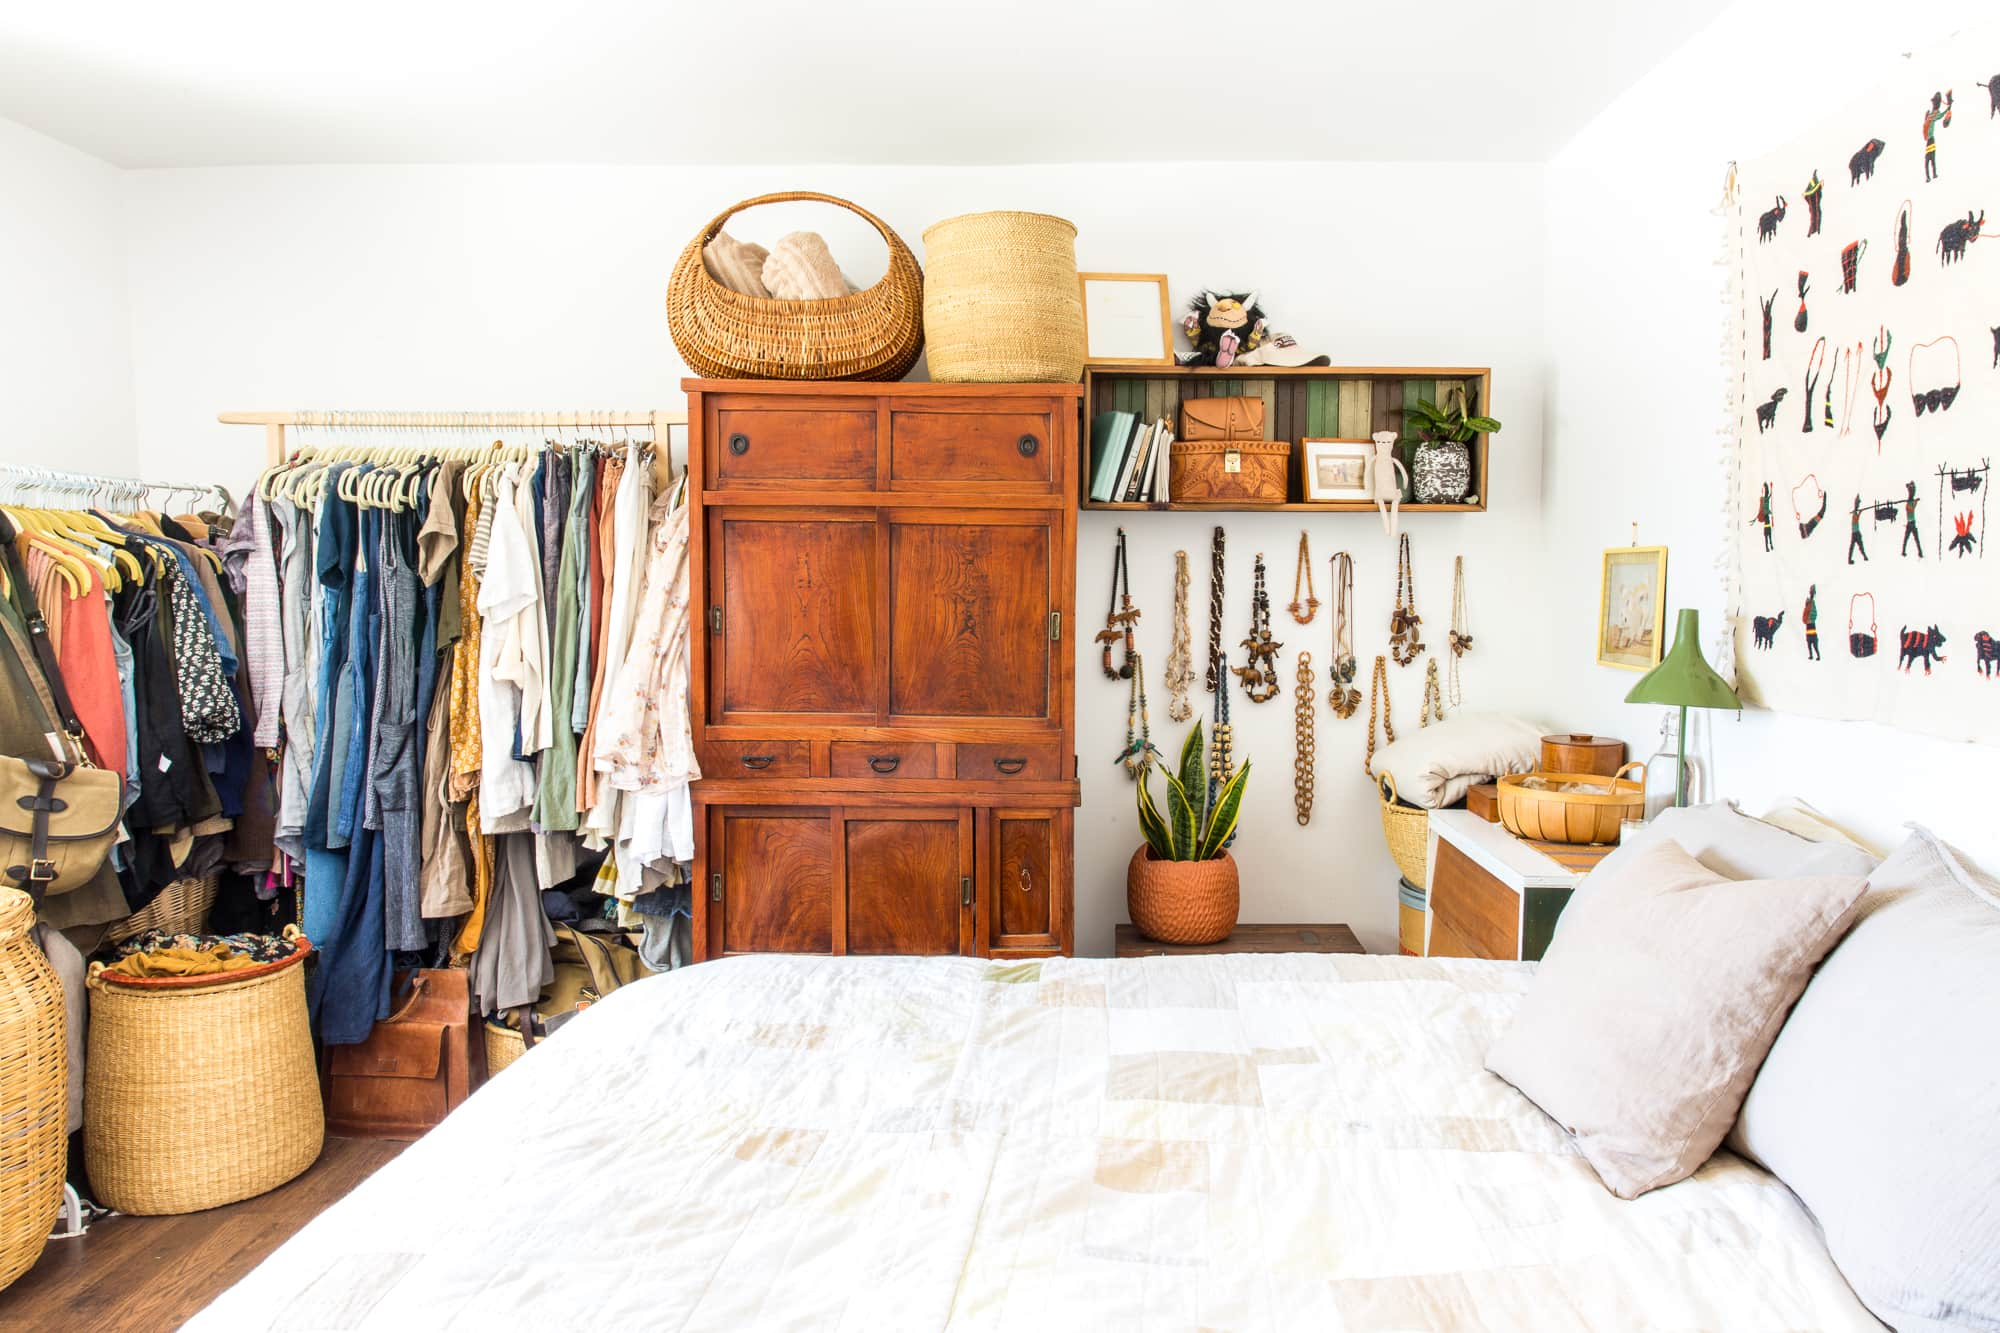 House Tour: A Hand-Crafted Los Angeles Home | Apartment Therapy